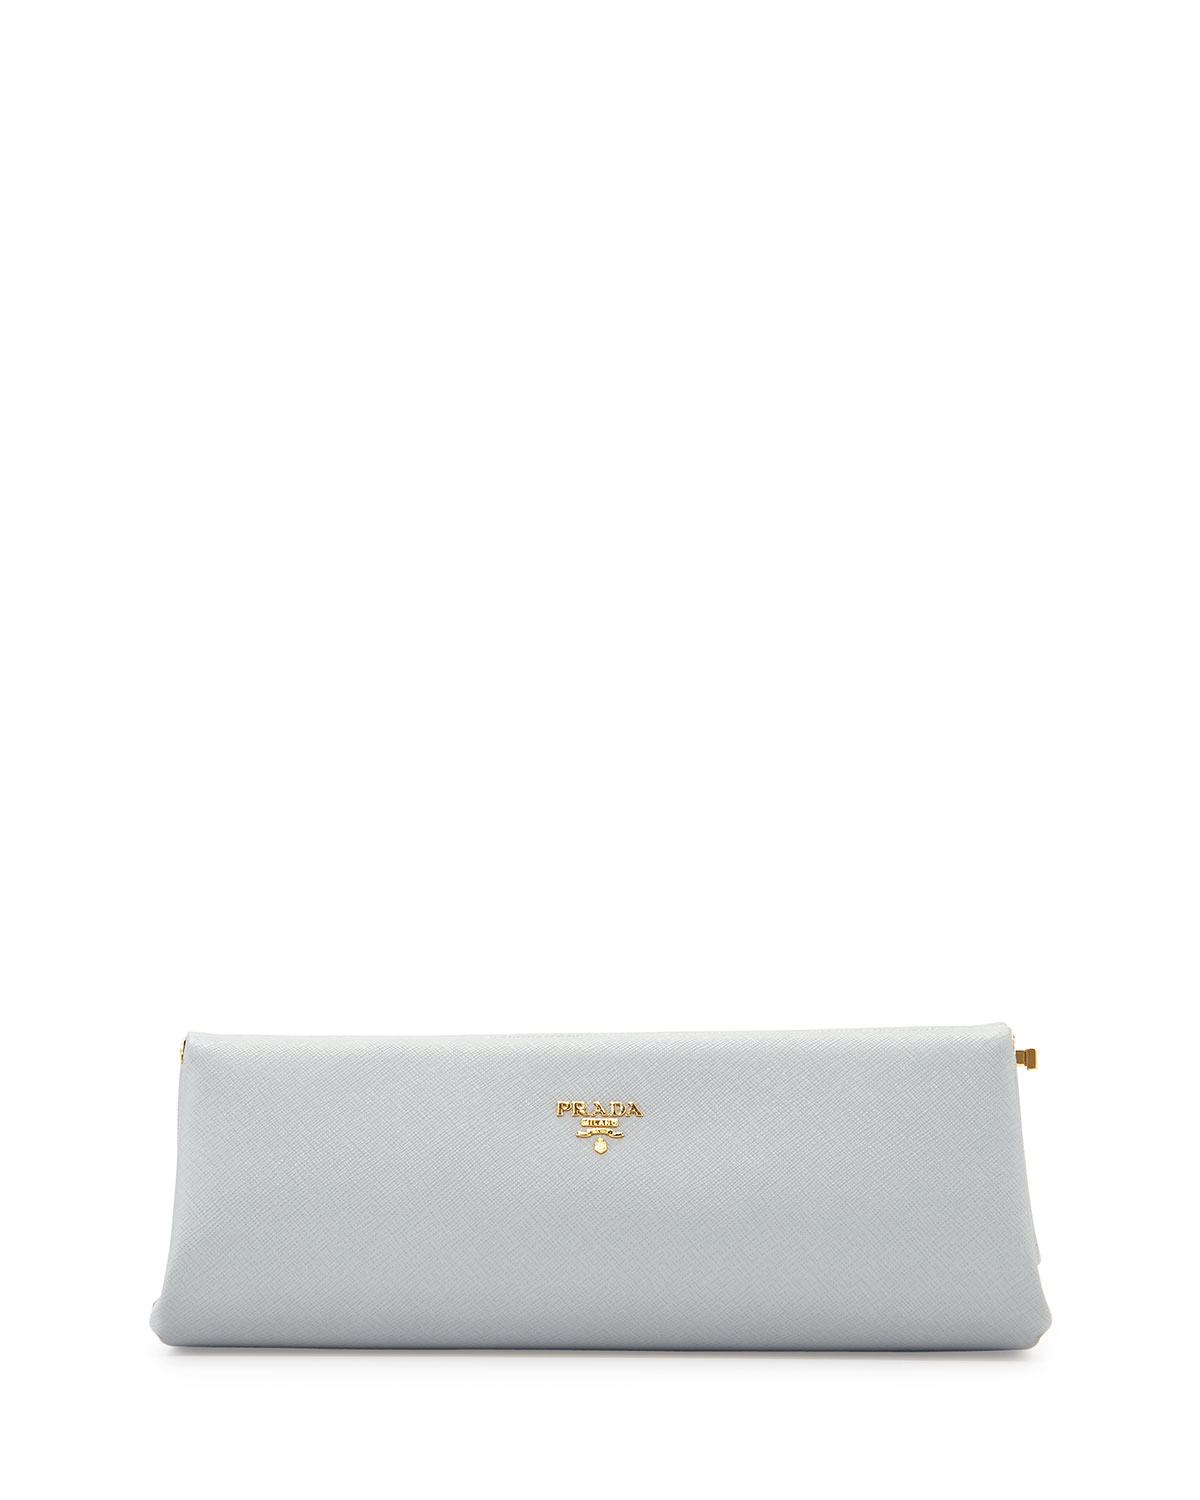 5299501ac4e6 Prada Saffiano East-West Frame Clutch Bag, Light Gray (Granito ...